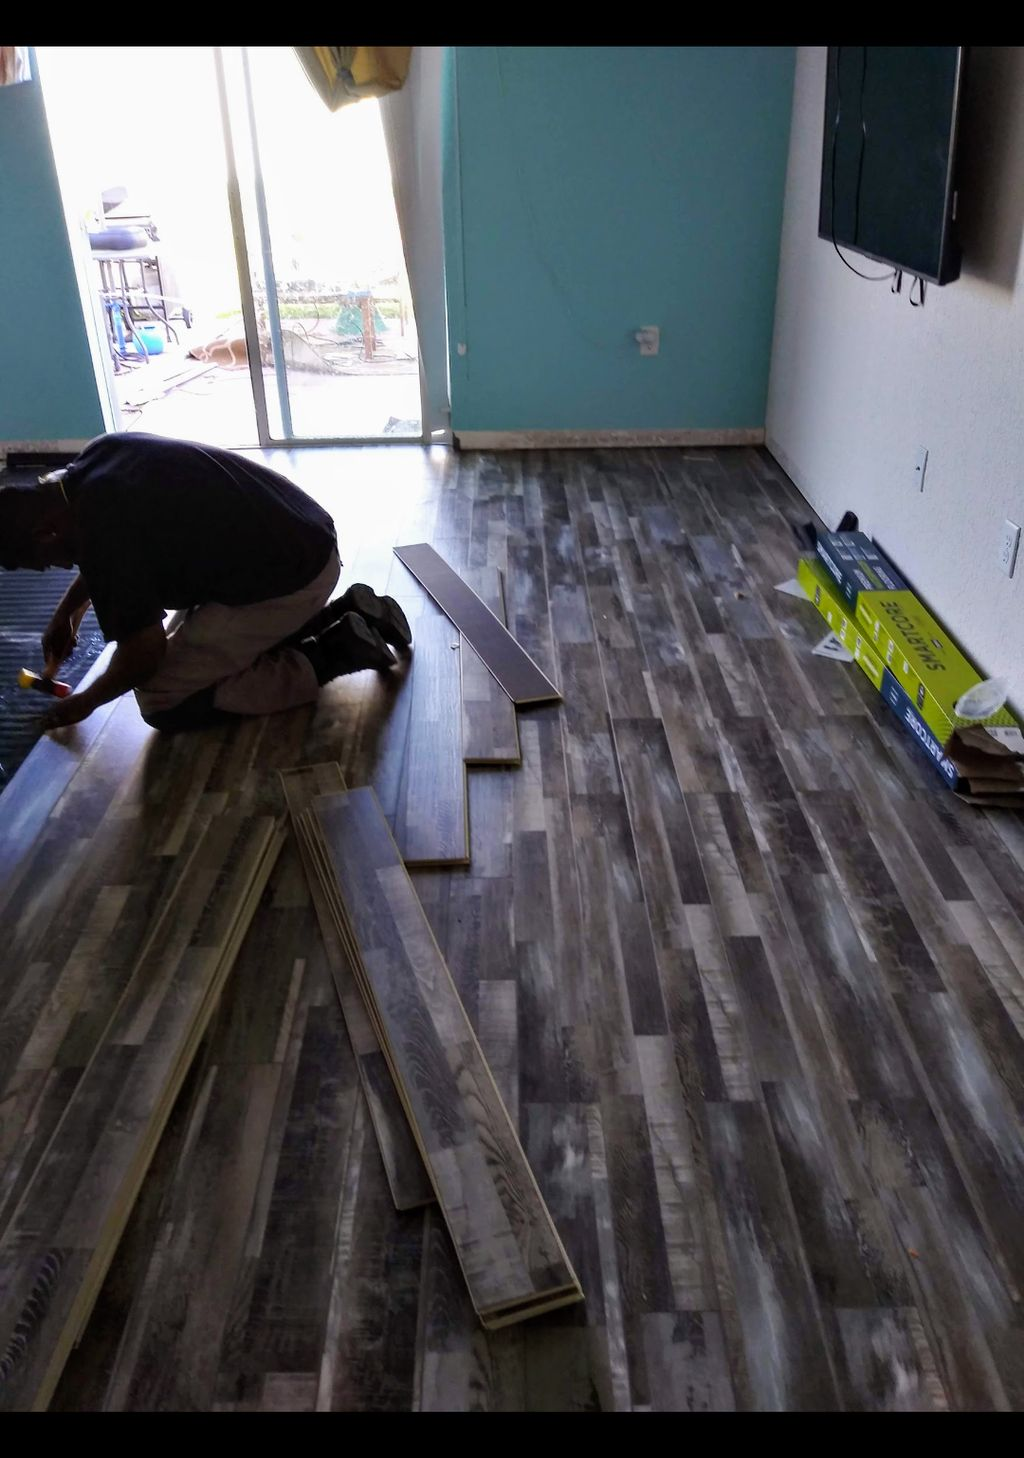 Flooring and baseboards